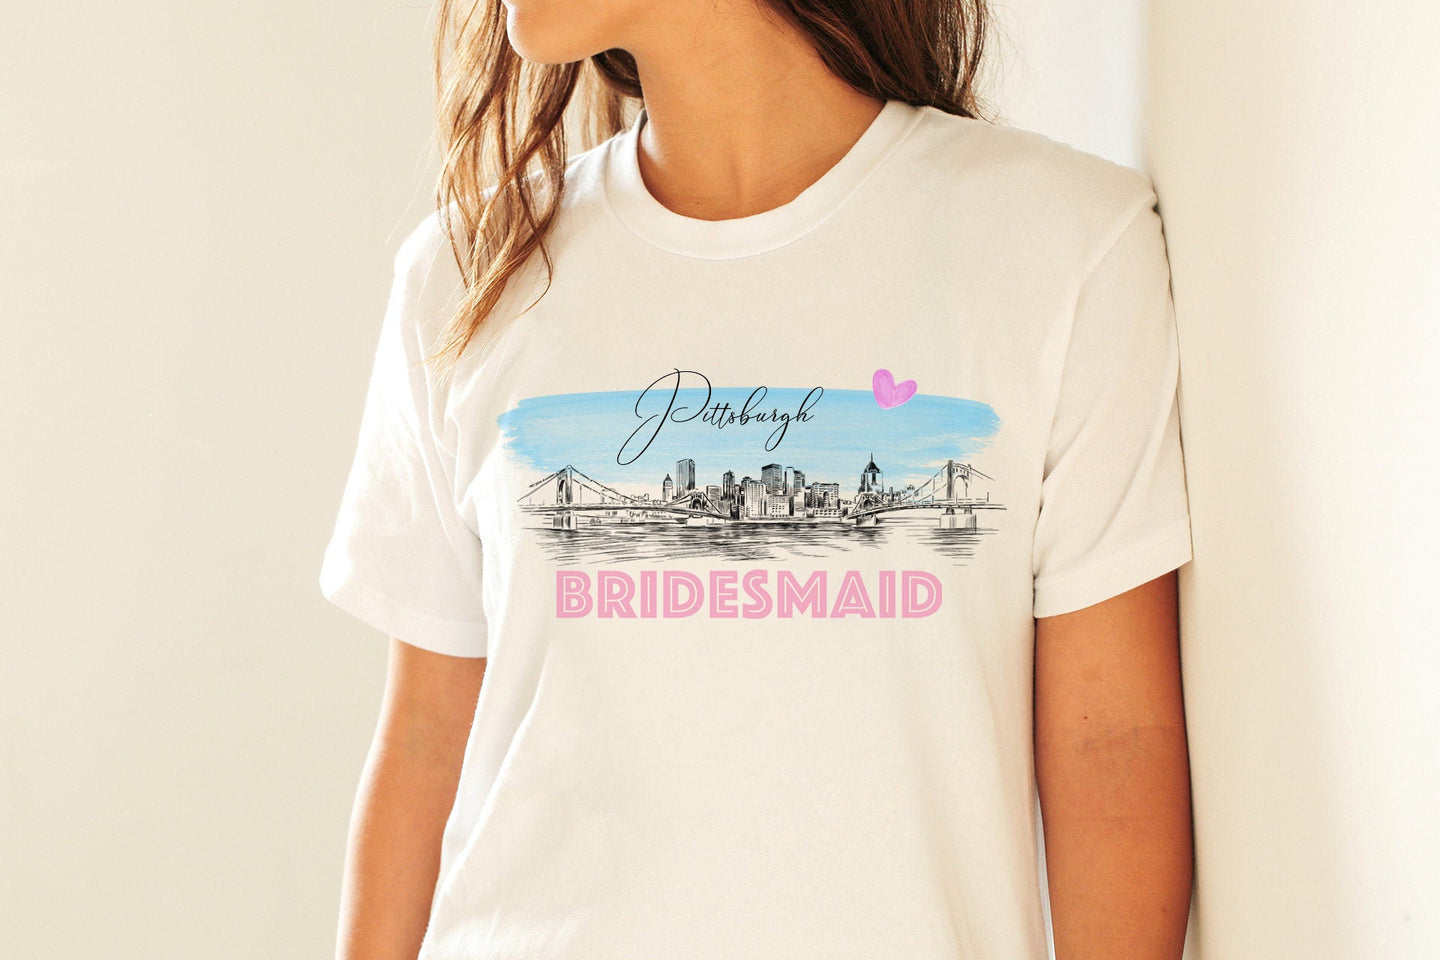 Pittsburgh Bridesmaid Shirt, T-Shirt, Pittsburgh, PA, Skyline, Bride Tee, Wedding Shirt, Bride, Bridal Shower Gift, Bachelorette, Gift